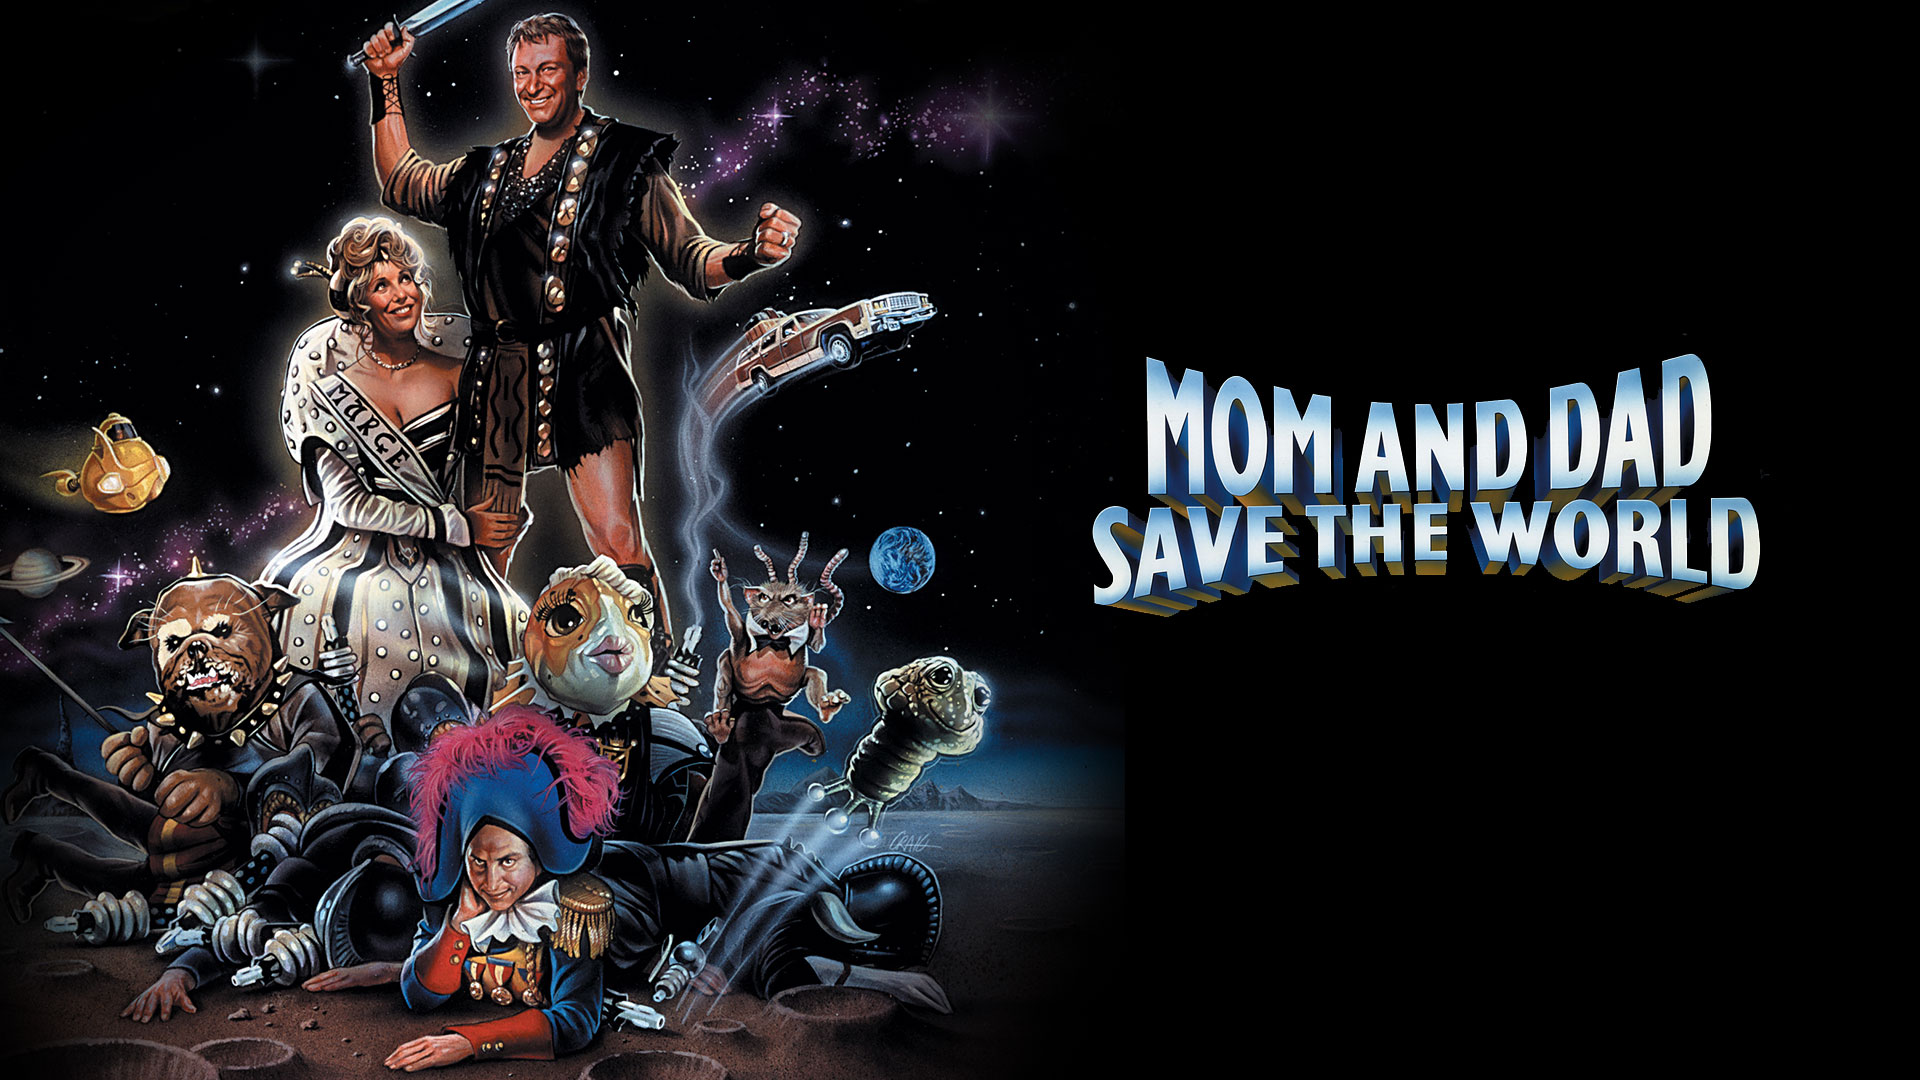 Mom and Dad Save the World